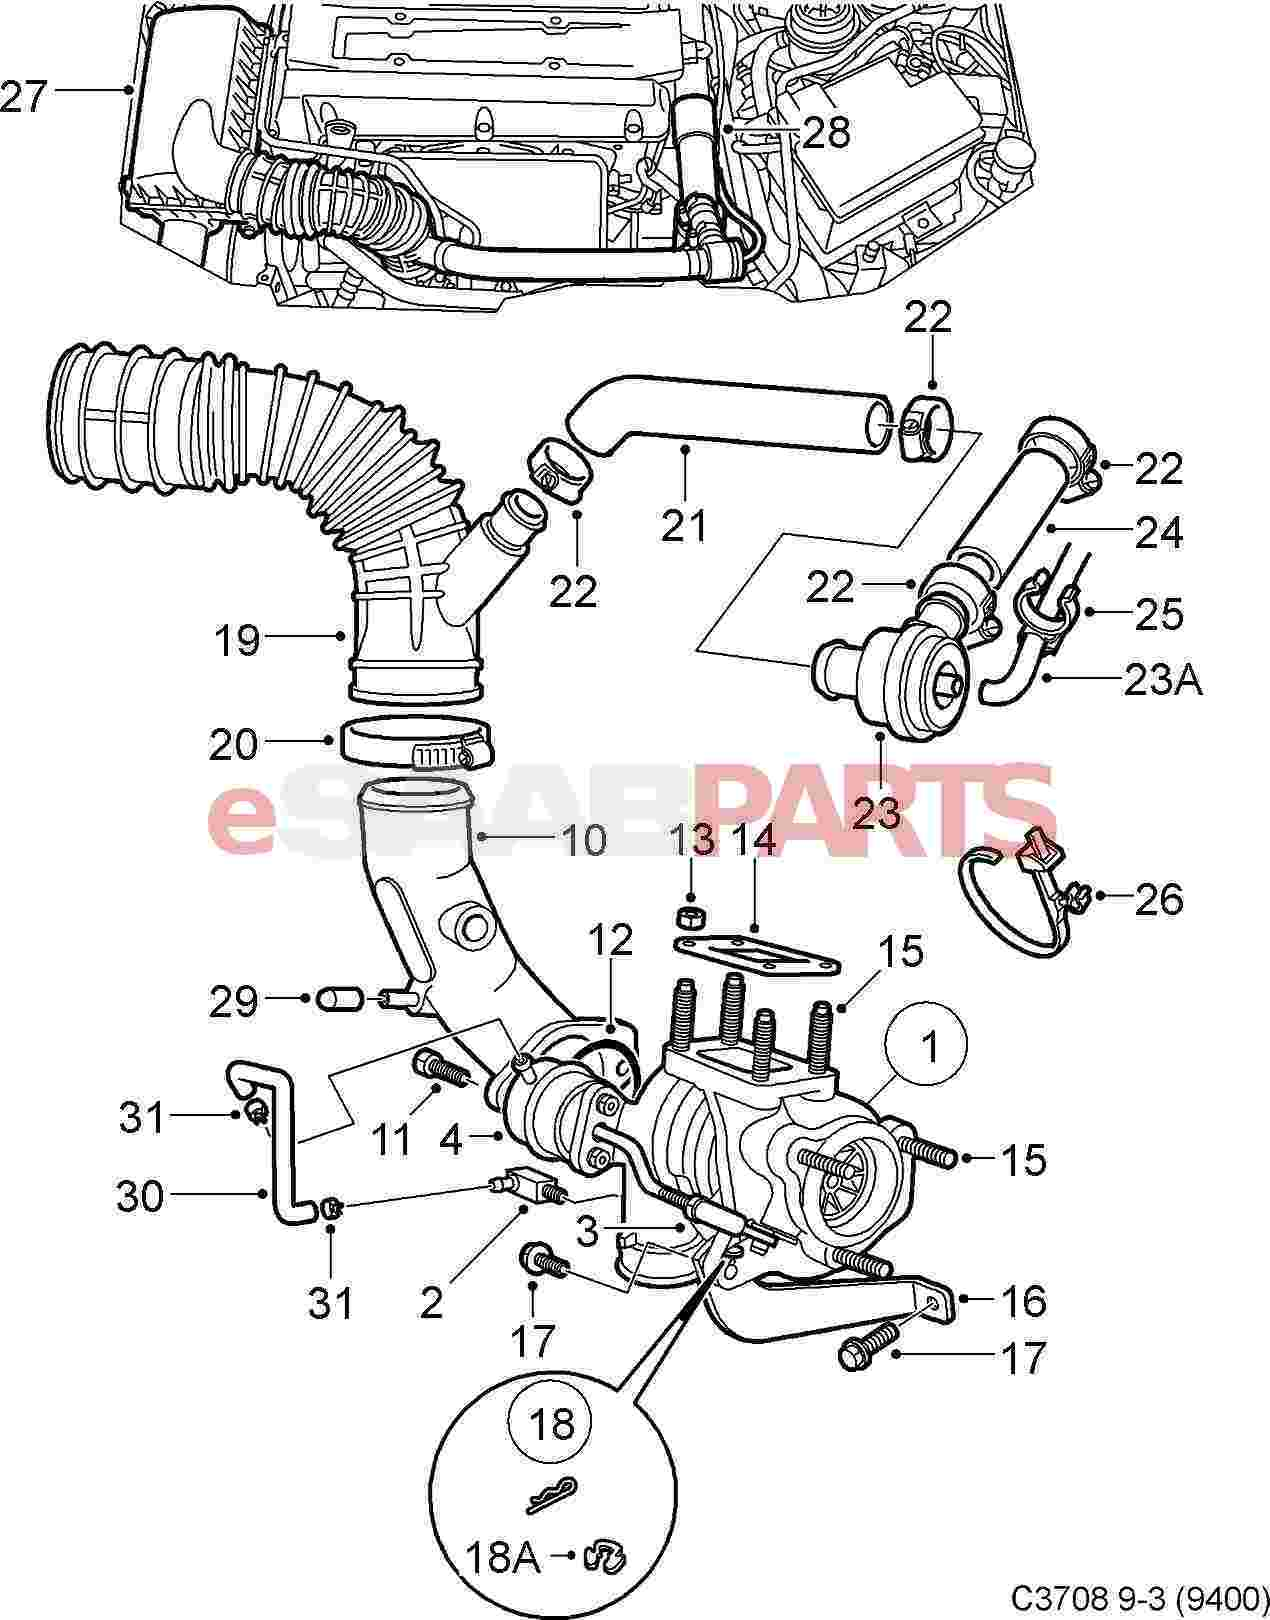 Saab 9 3 Engine Diagram. Saab. Auto Parts Catalog And Diagram